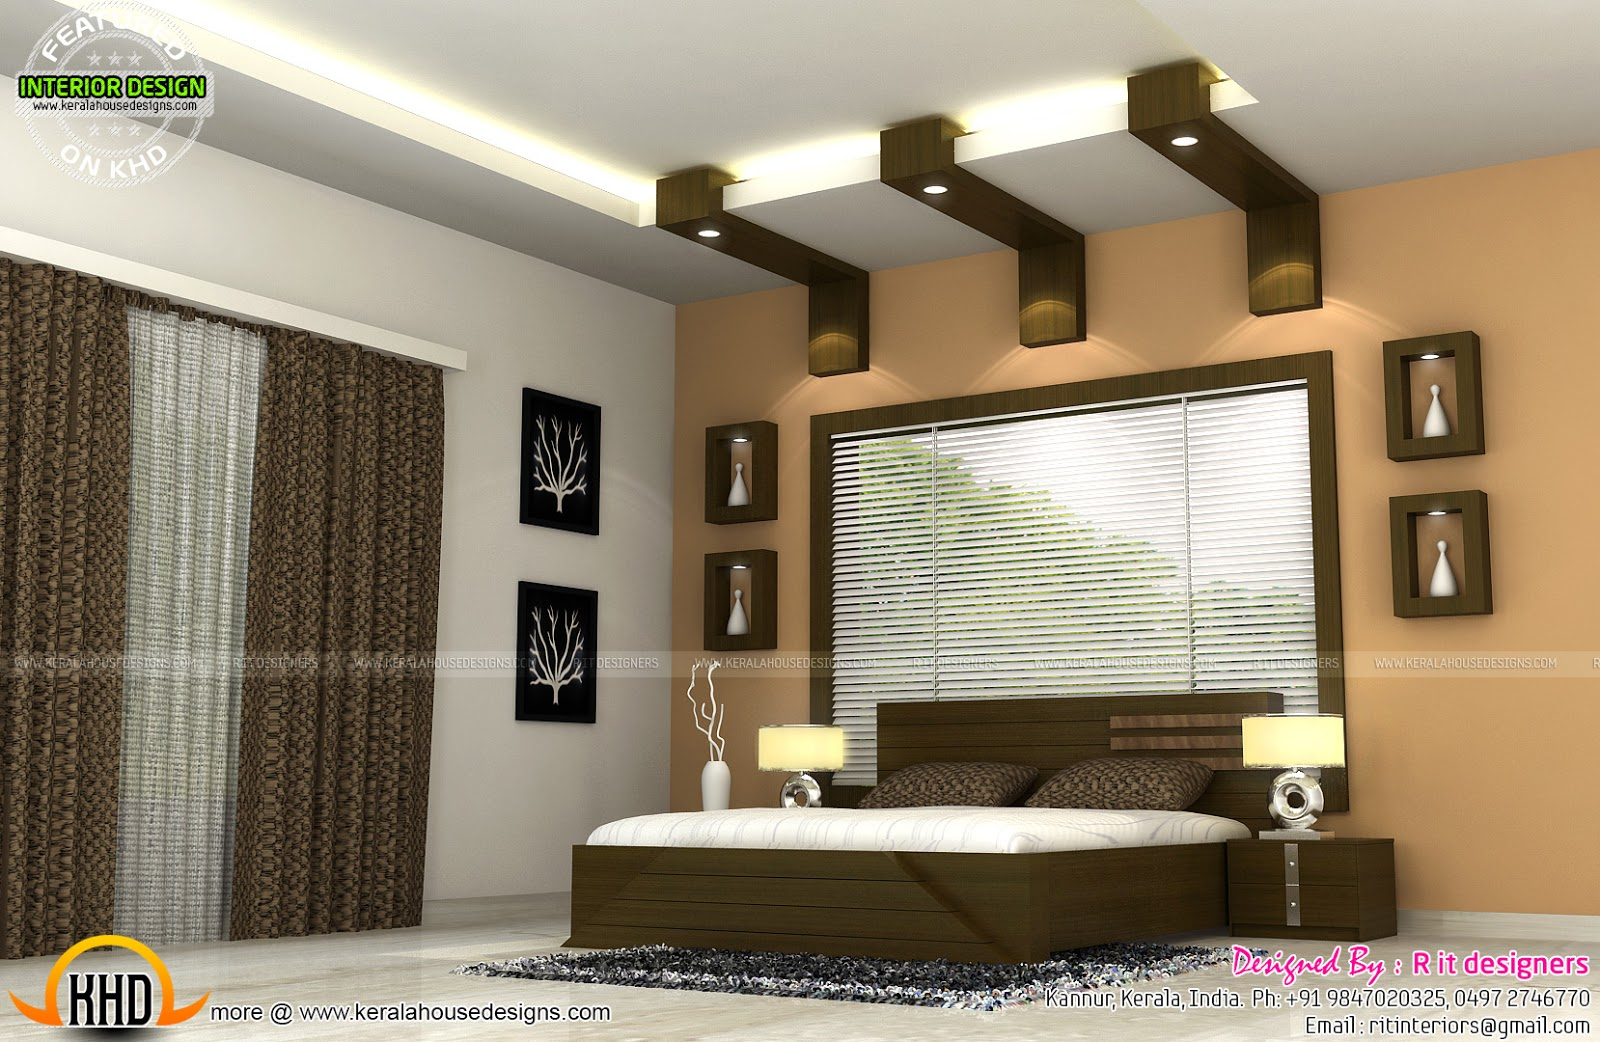 Interiors of bedrooms and kitchen kerala home design and for House designs interior photos